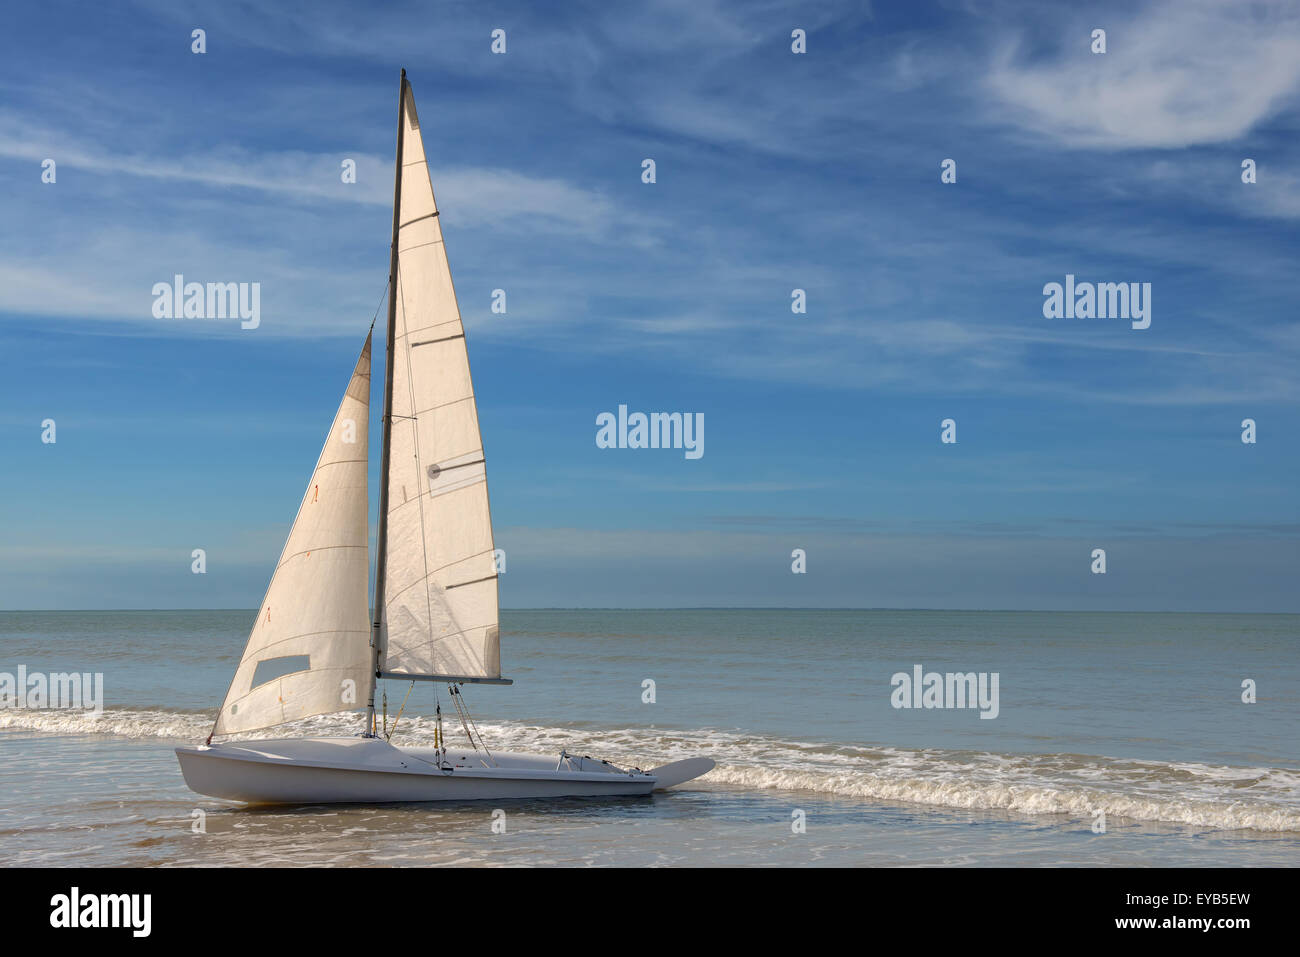 little white sailboat grounded on a beach on blue cloudy background - Stock Image